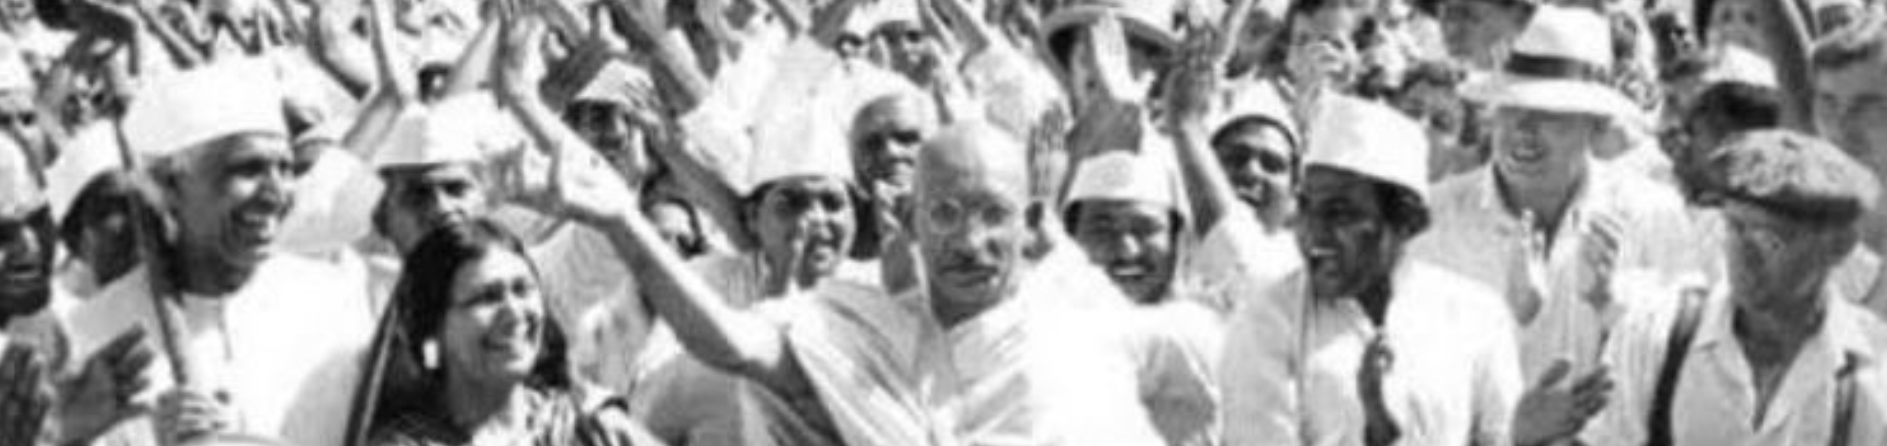 'If Gandhi were alive, he would be at every protest today'